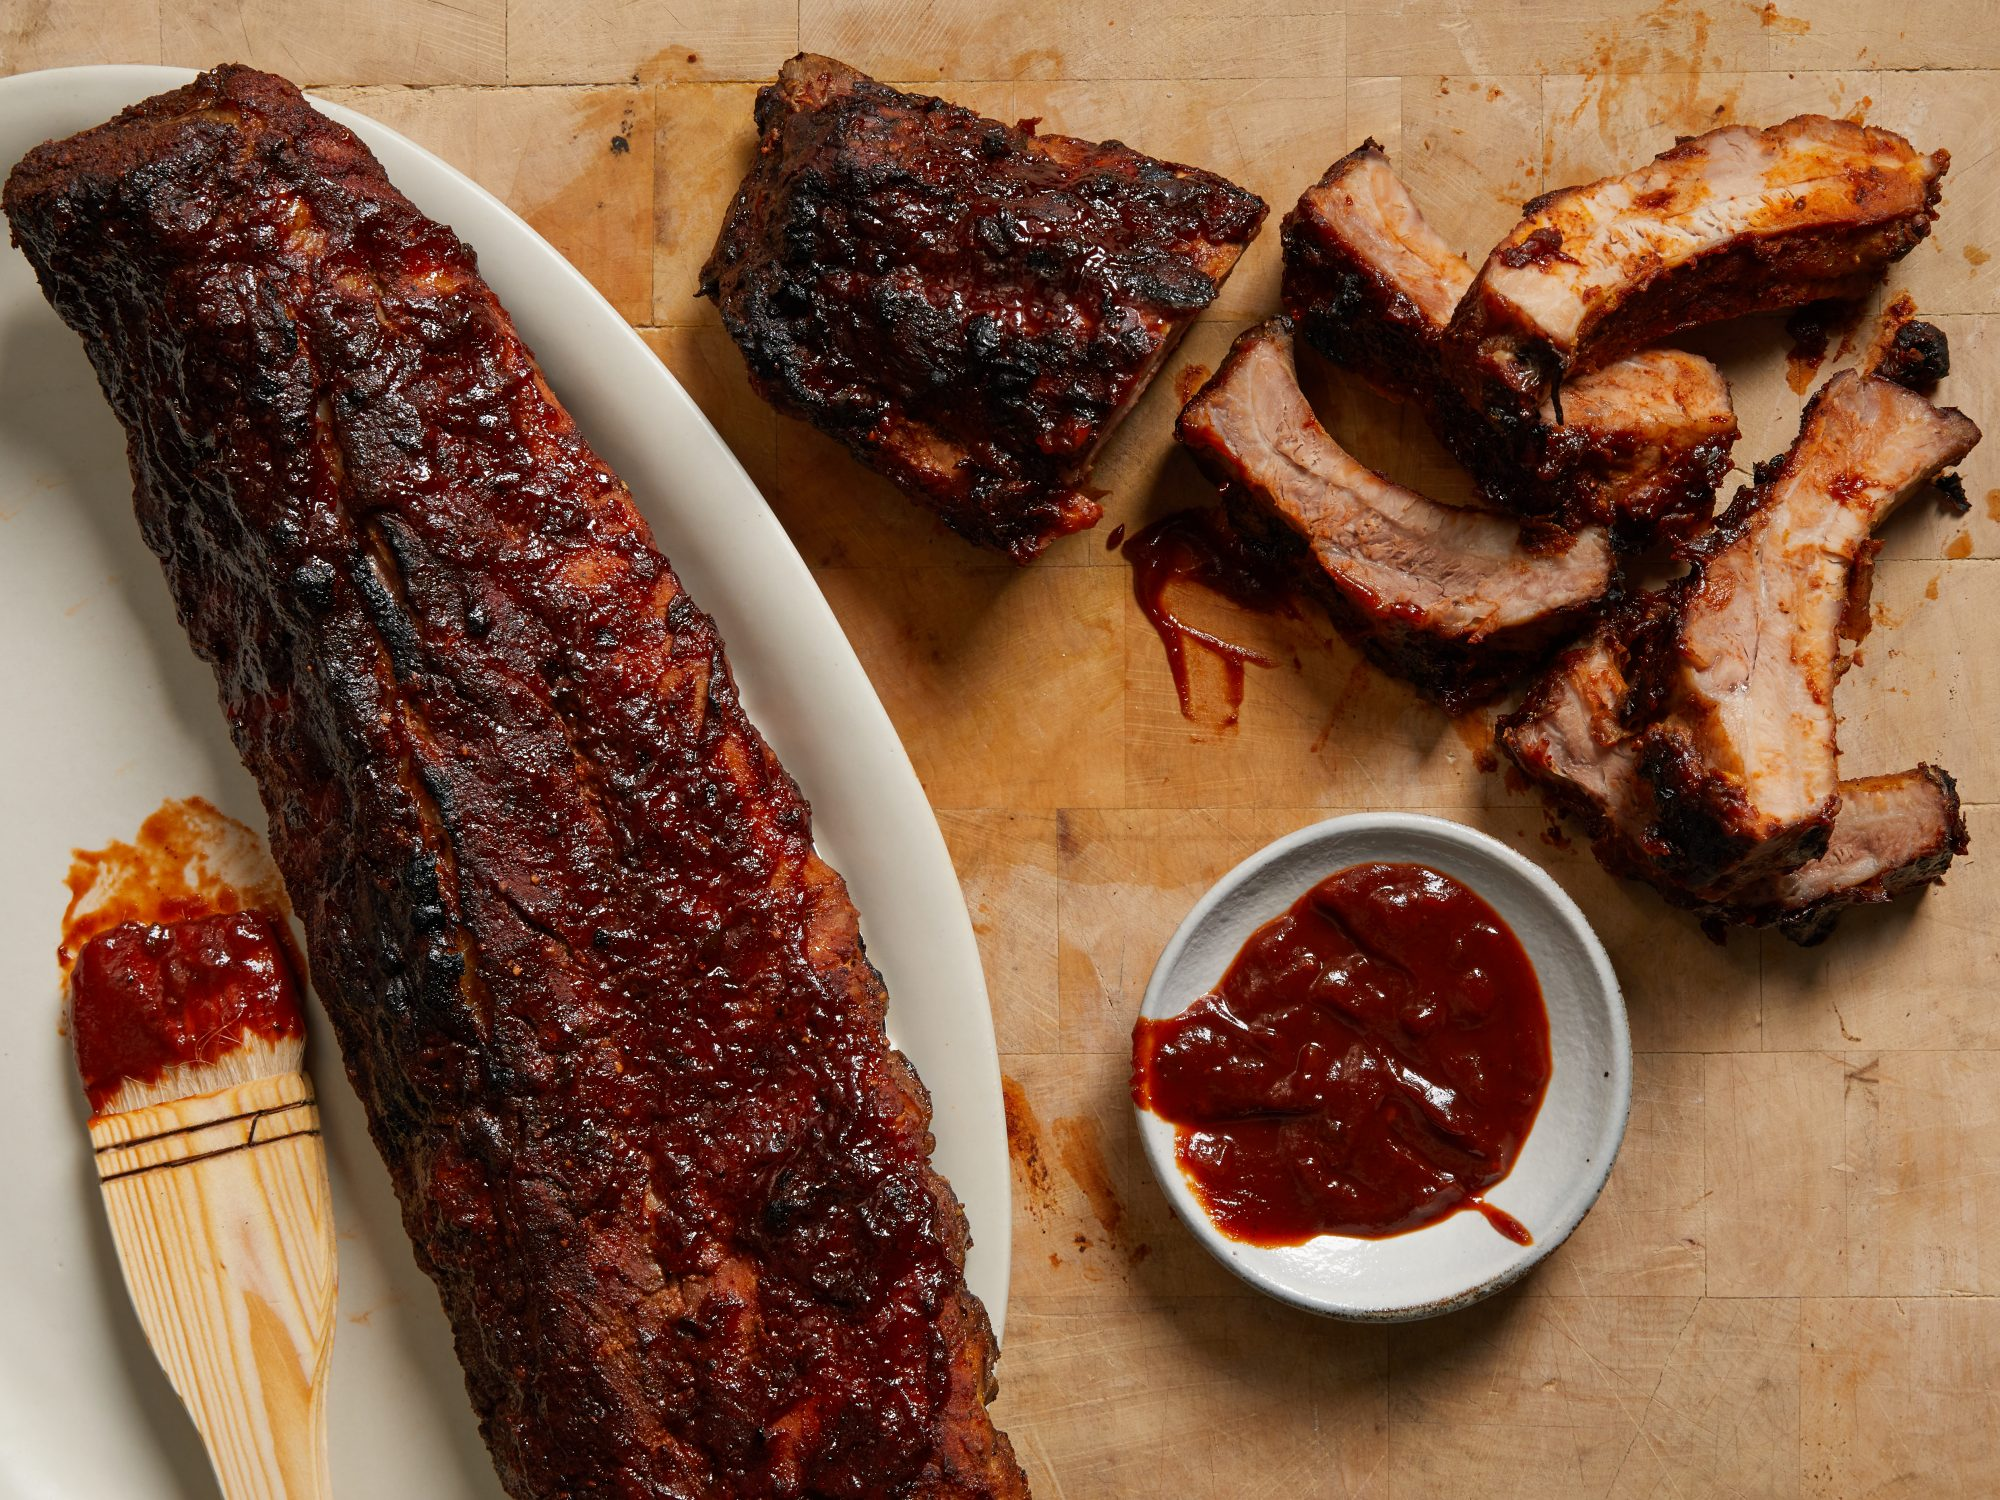 Pork ribs in the oven - recipe for the holiday